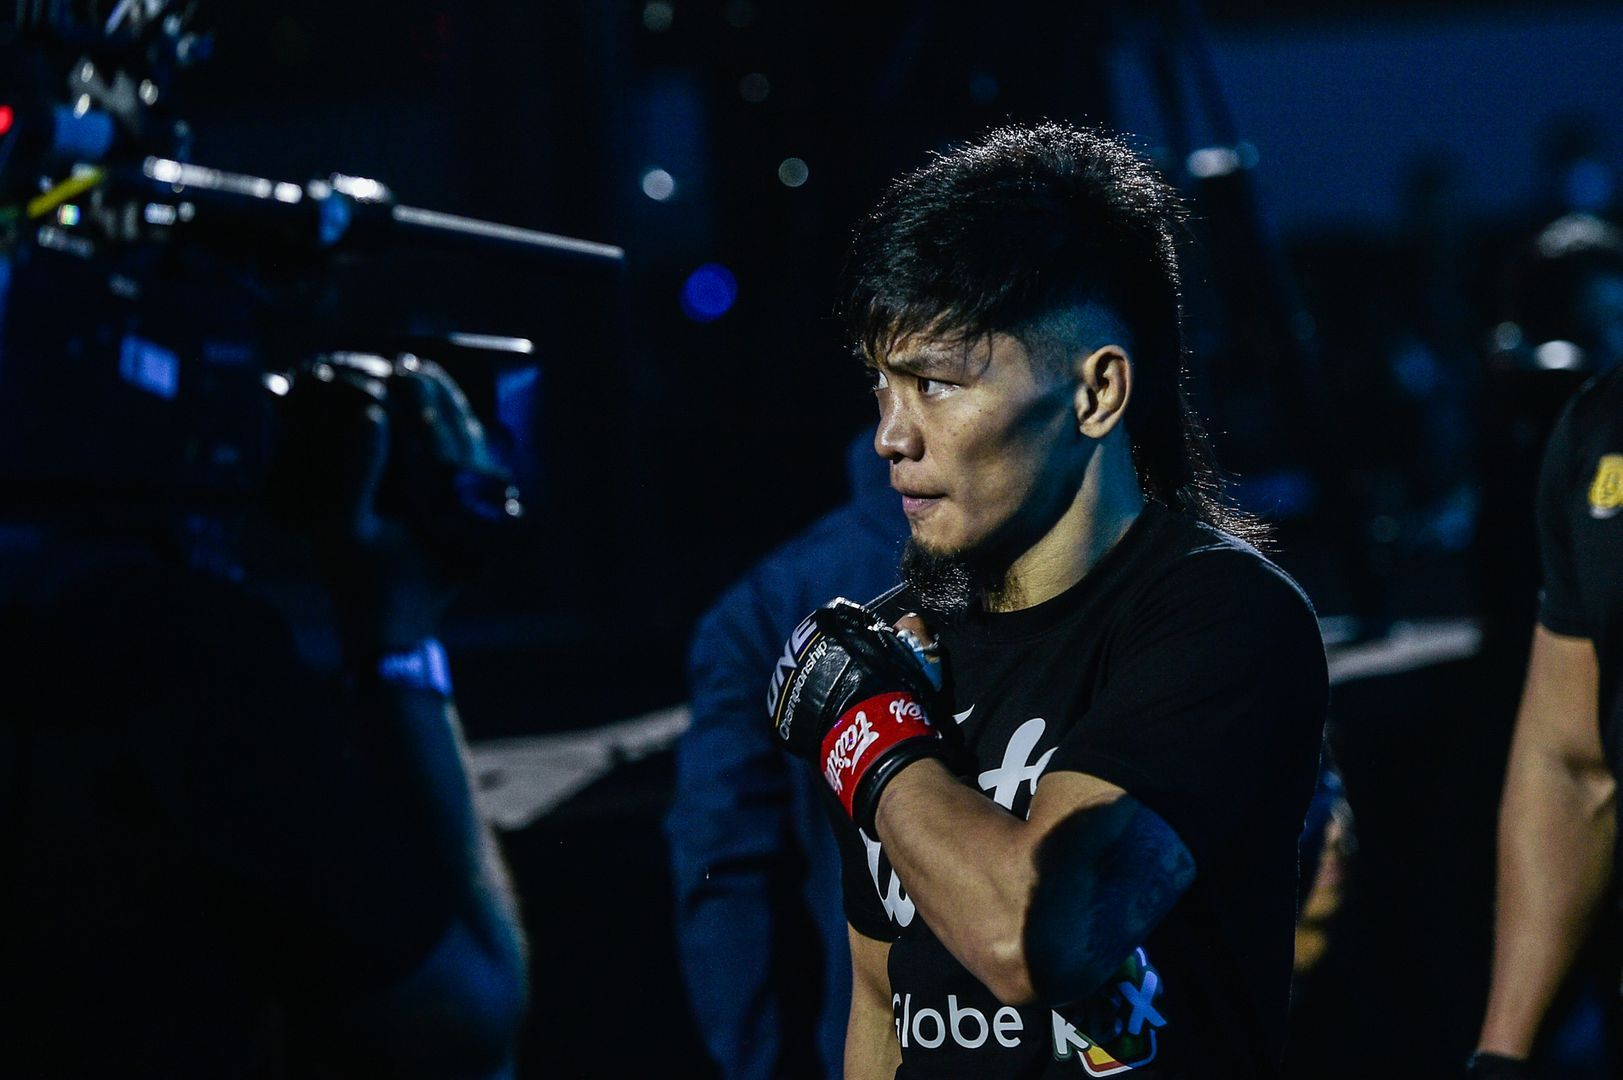 Lito Adiwang enters the Mall Of Asia Arena